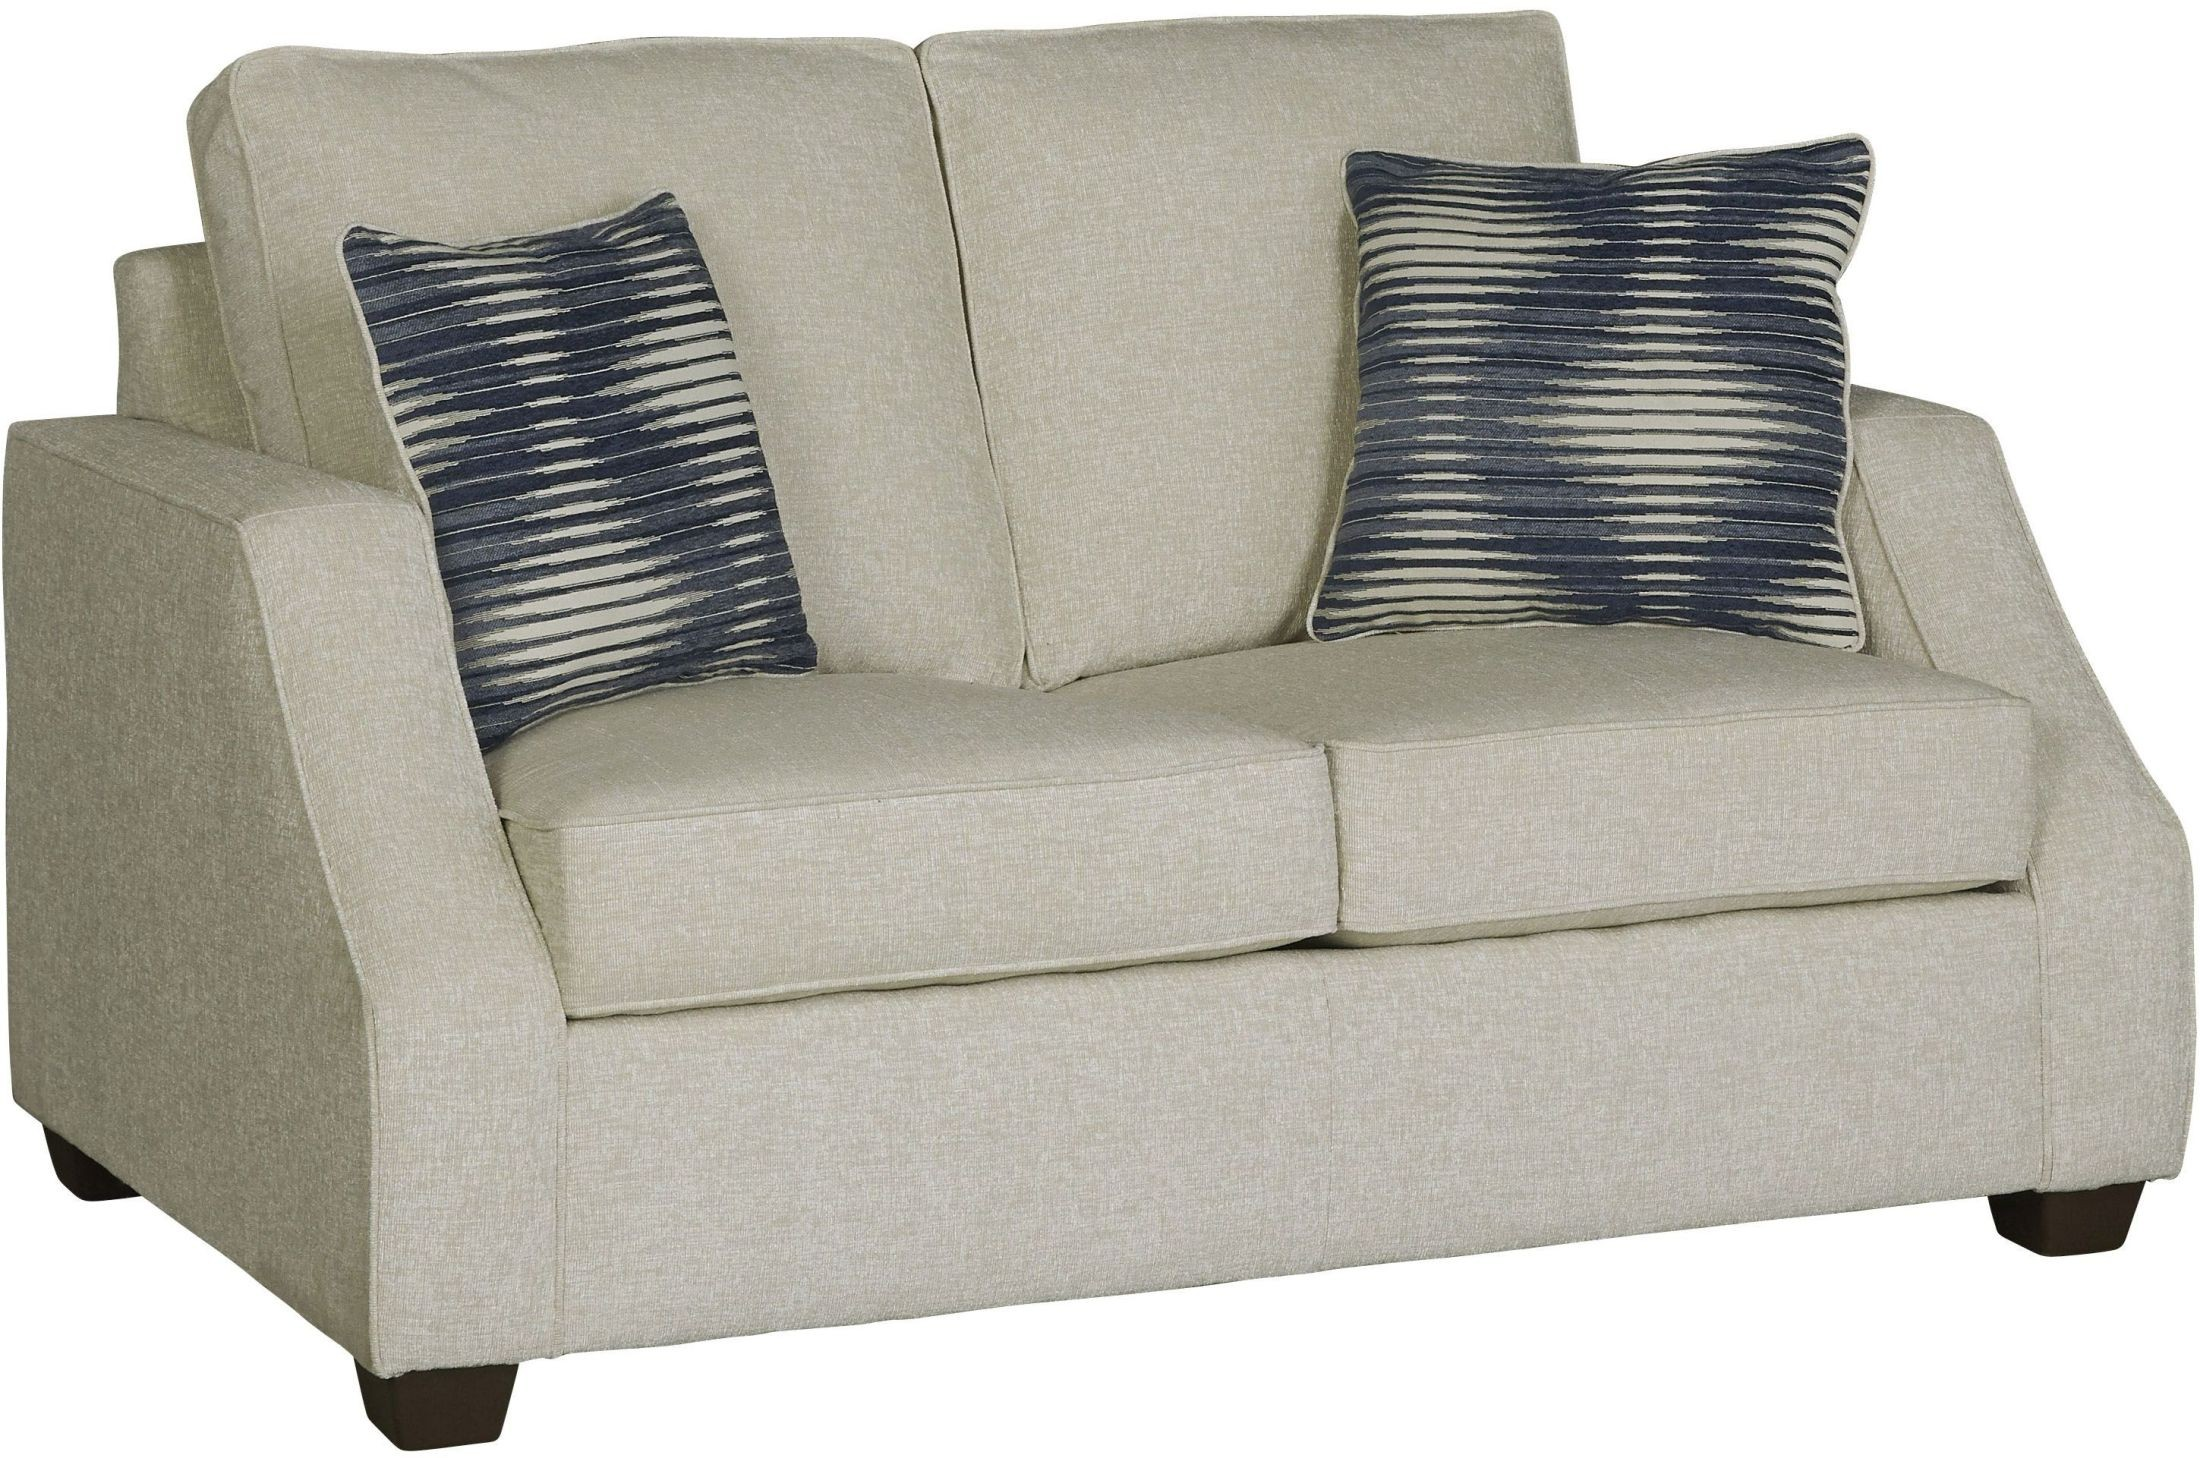 Hadley Ivory Loveseat From Progressive Furniture Coleman Furniture